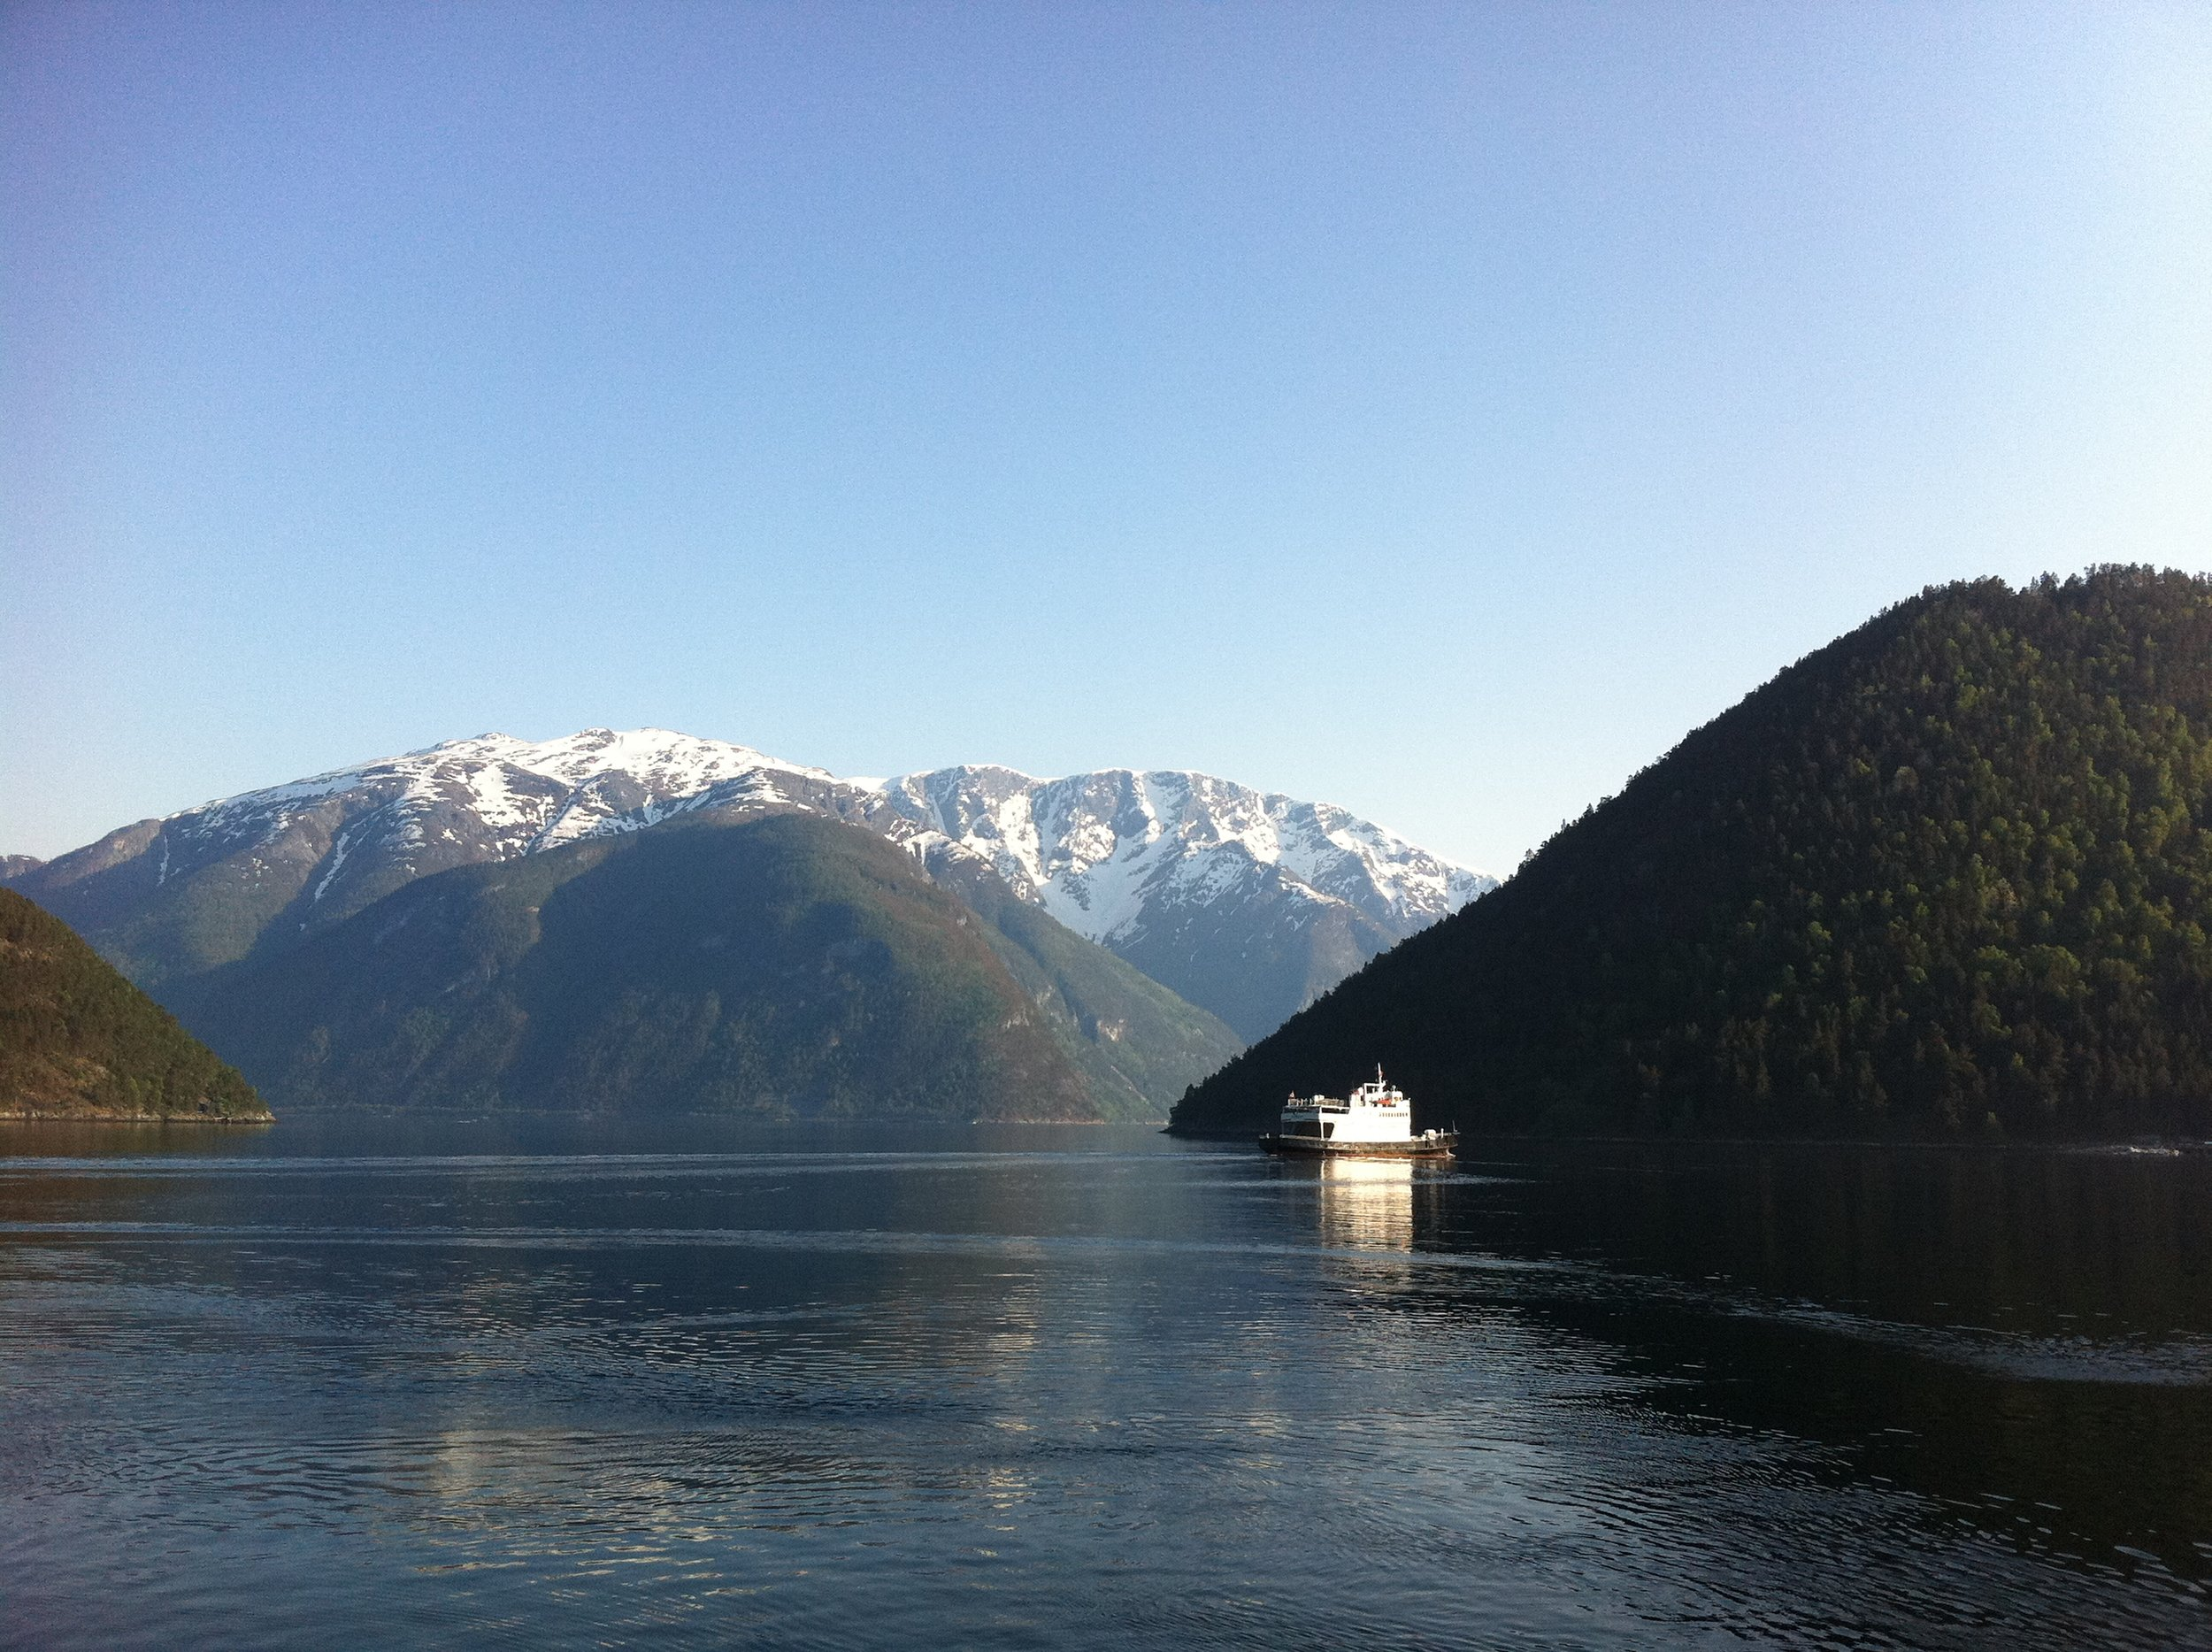 It is faster and more convenient to cross the Sognefjord by ferry than drive around it